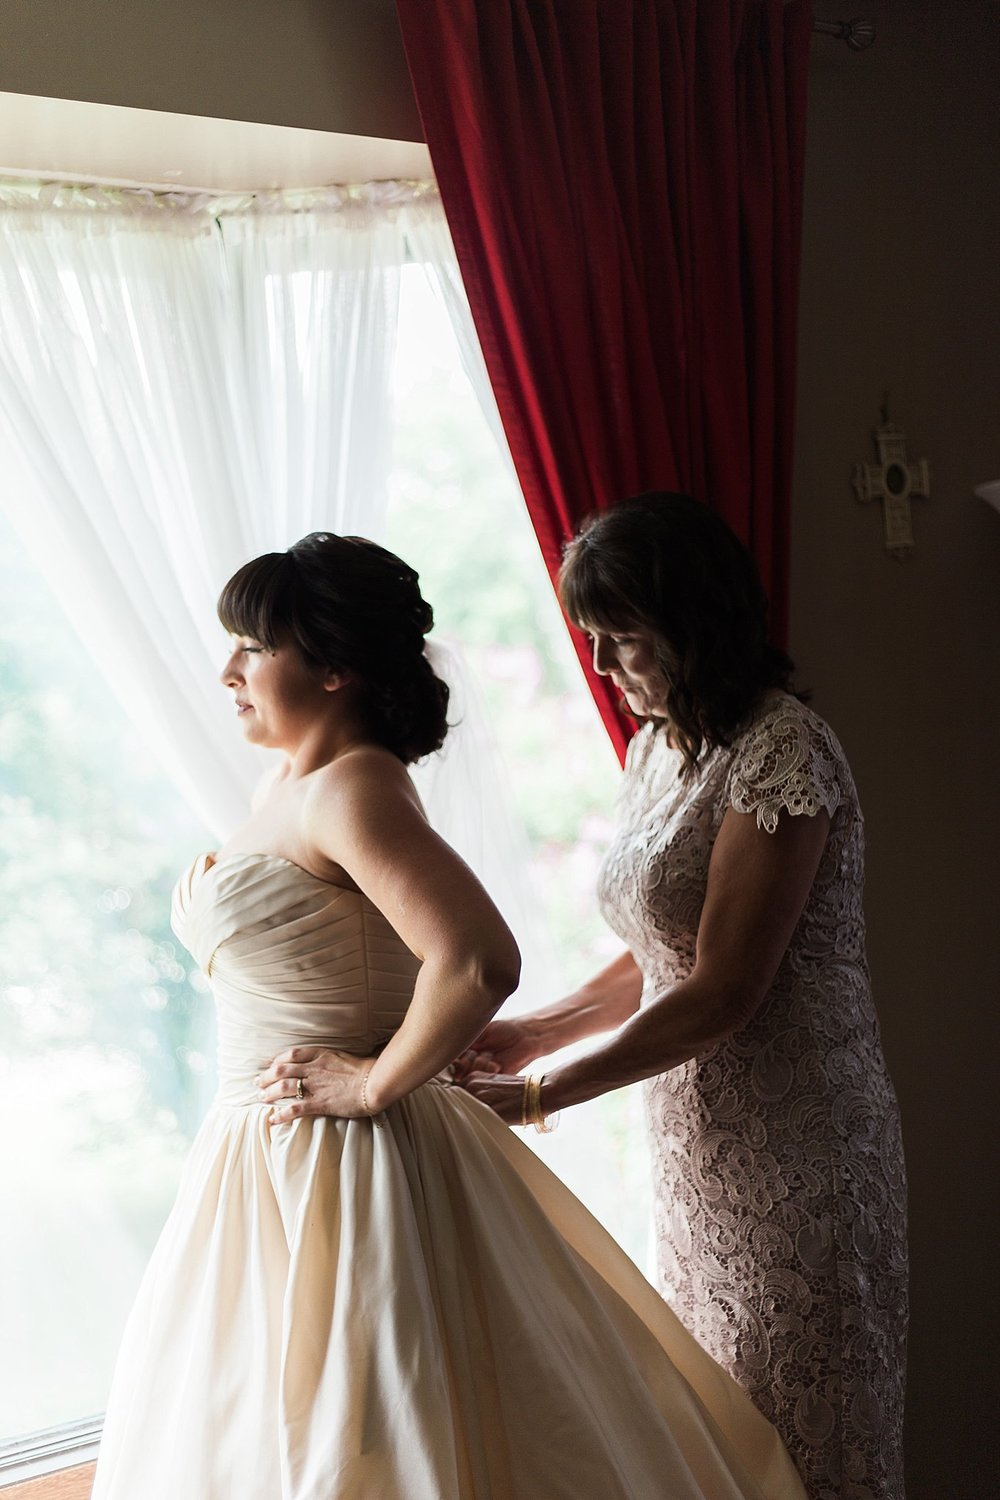 RCMP Wedding - Winnipeg Wedding Photographer - Mother helping put wedding dress on - Keila Marie Photography